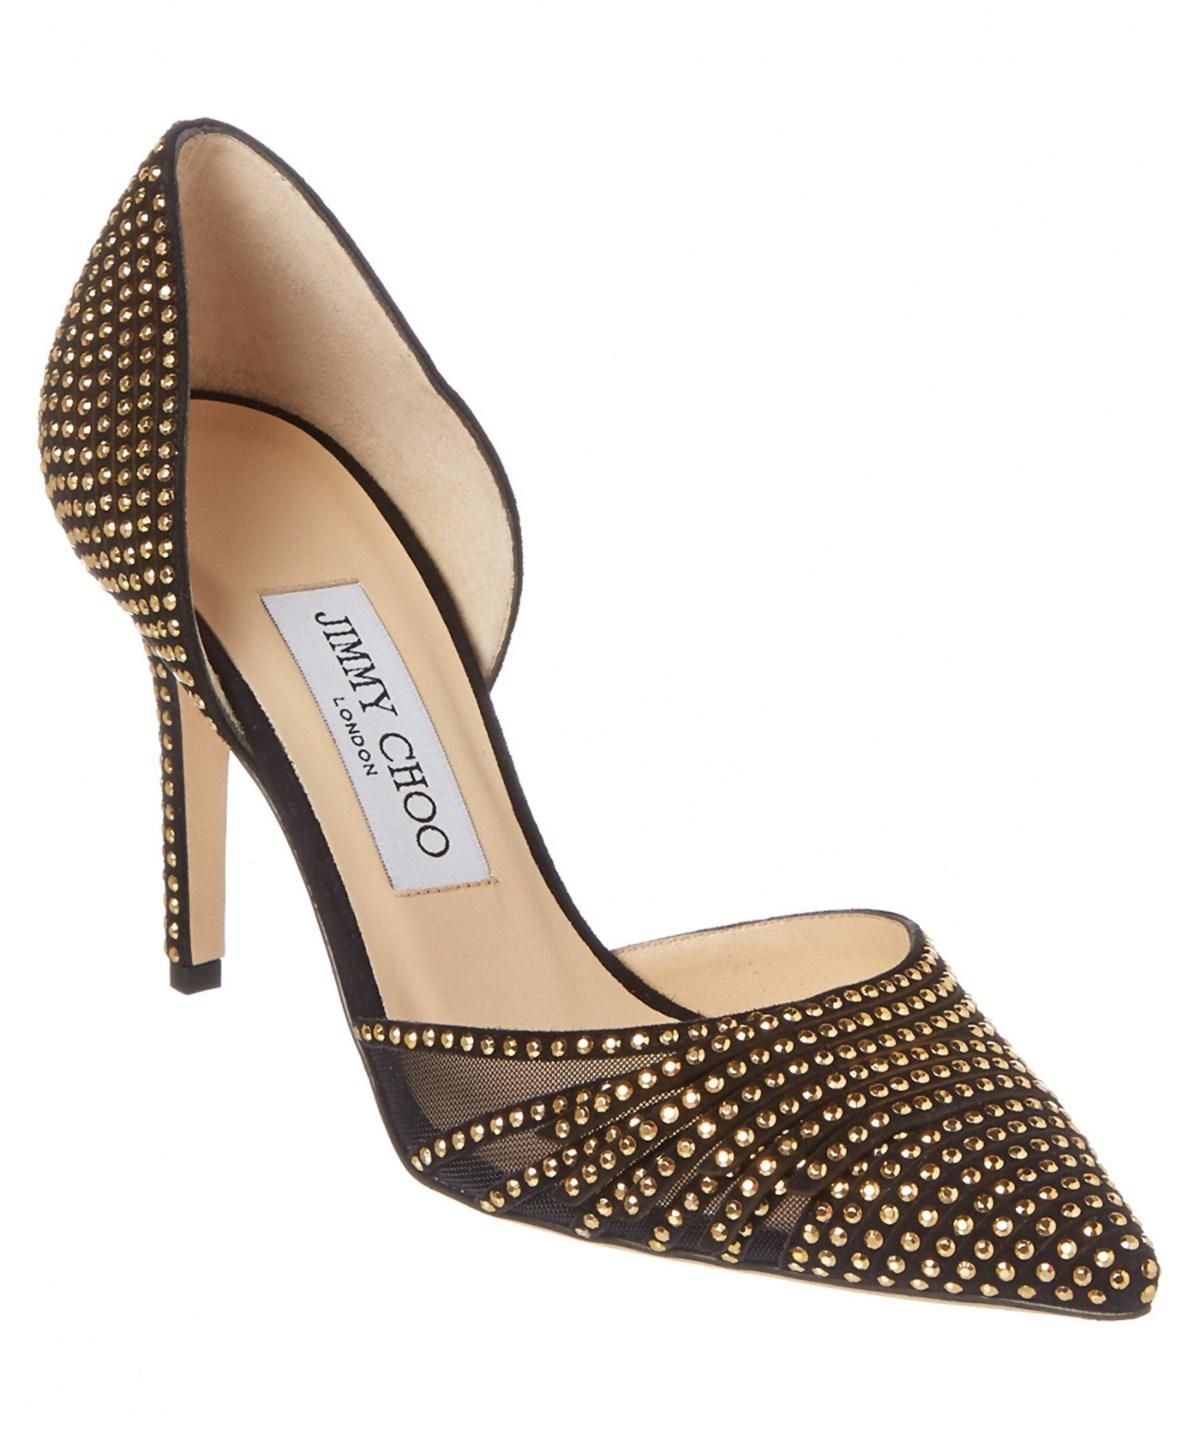 Pumps Kyra in Taupe gE86d0FK